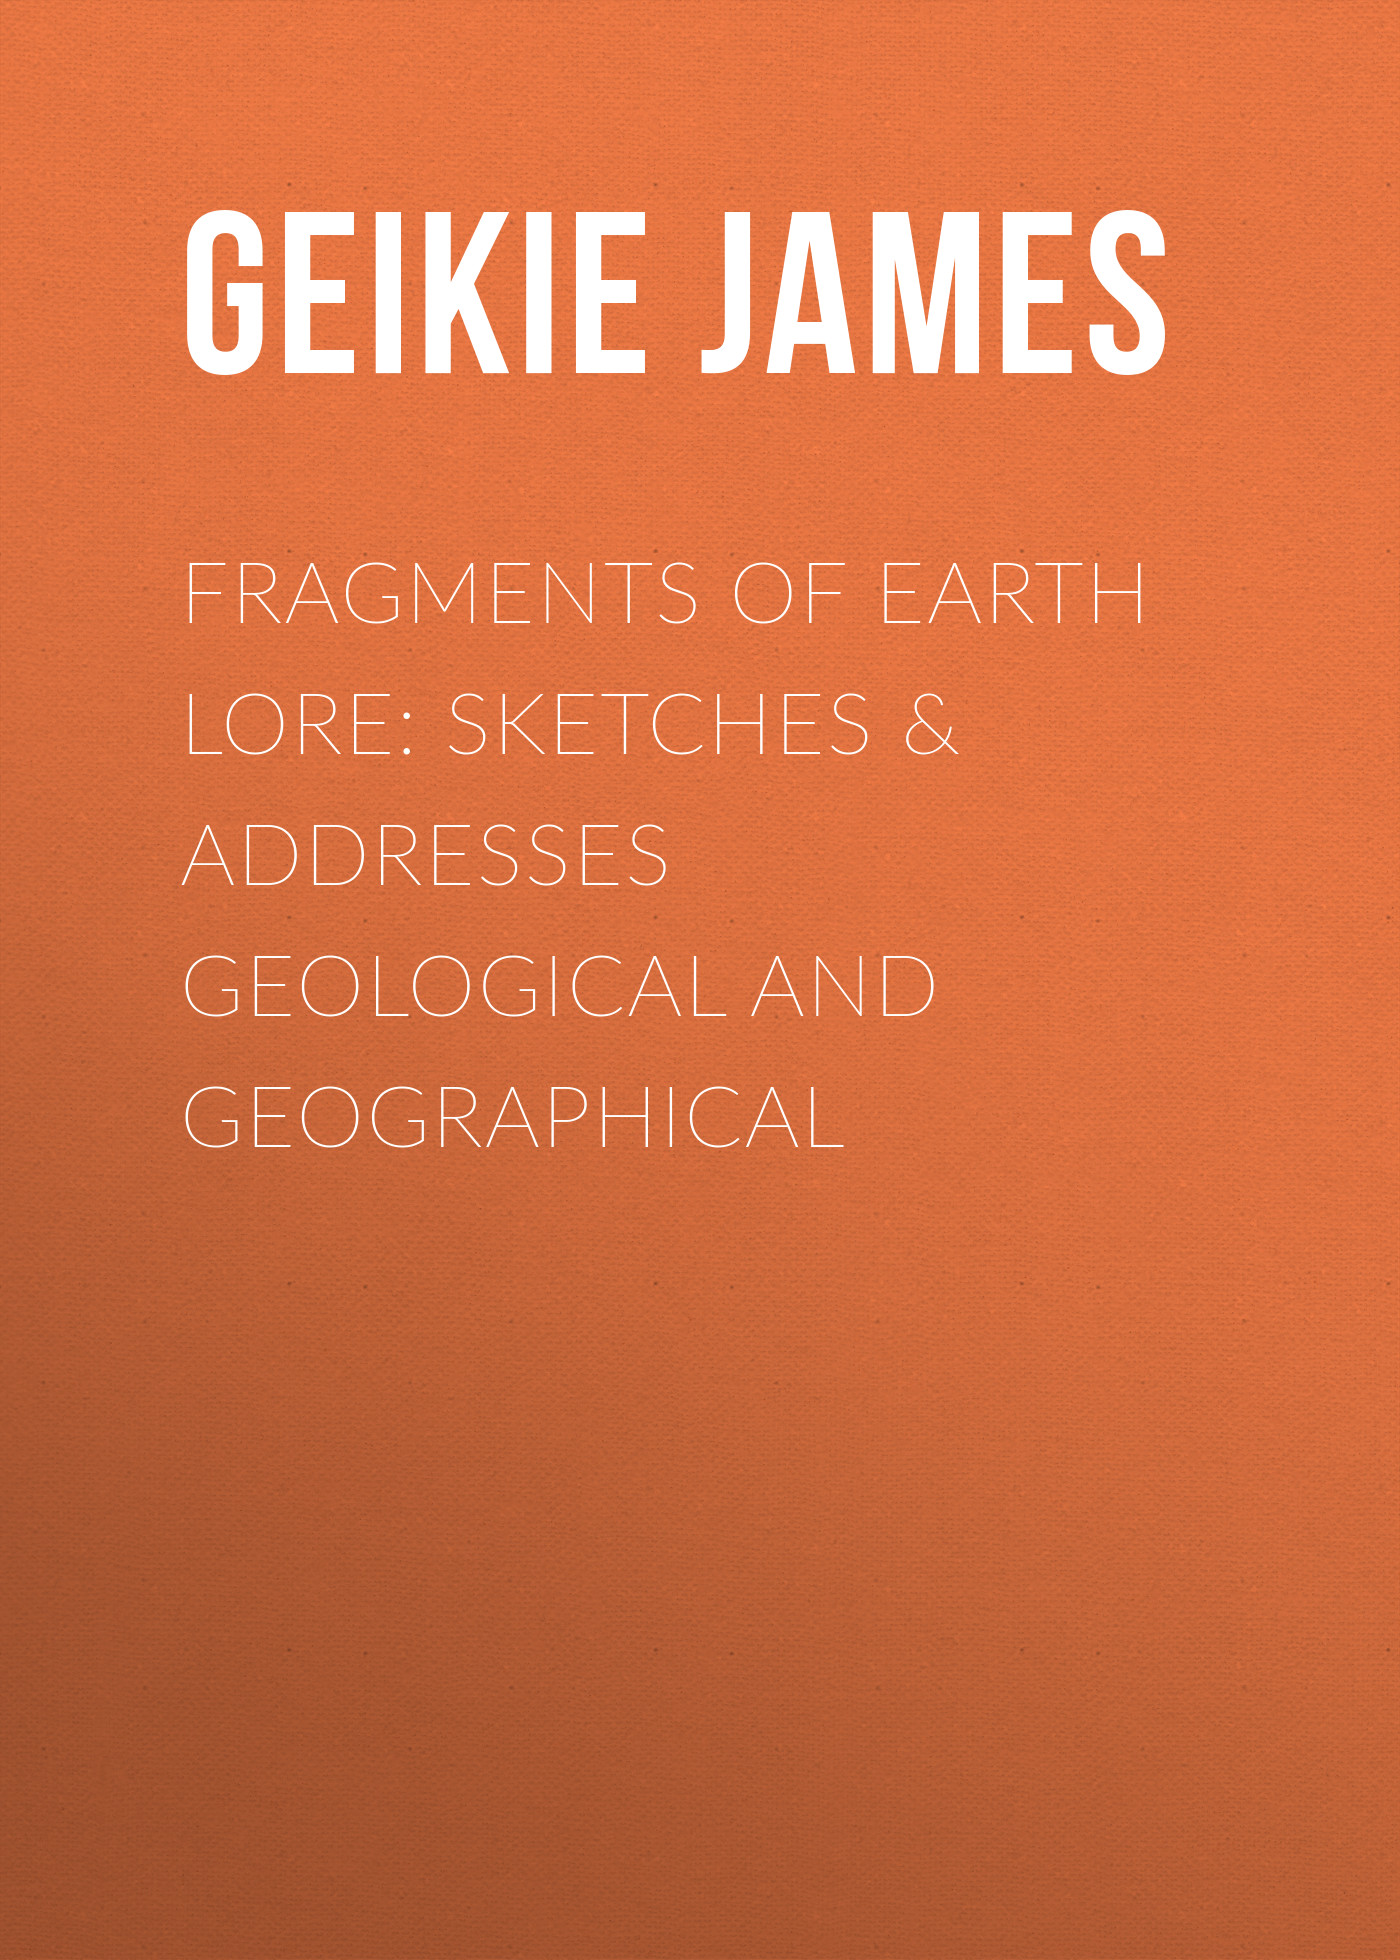 Fragments of Earth Lore: Sketches&Addresses Geological and Geographical